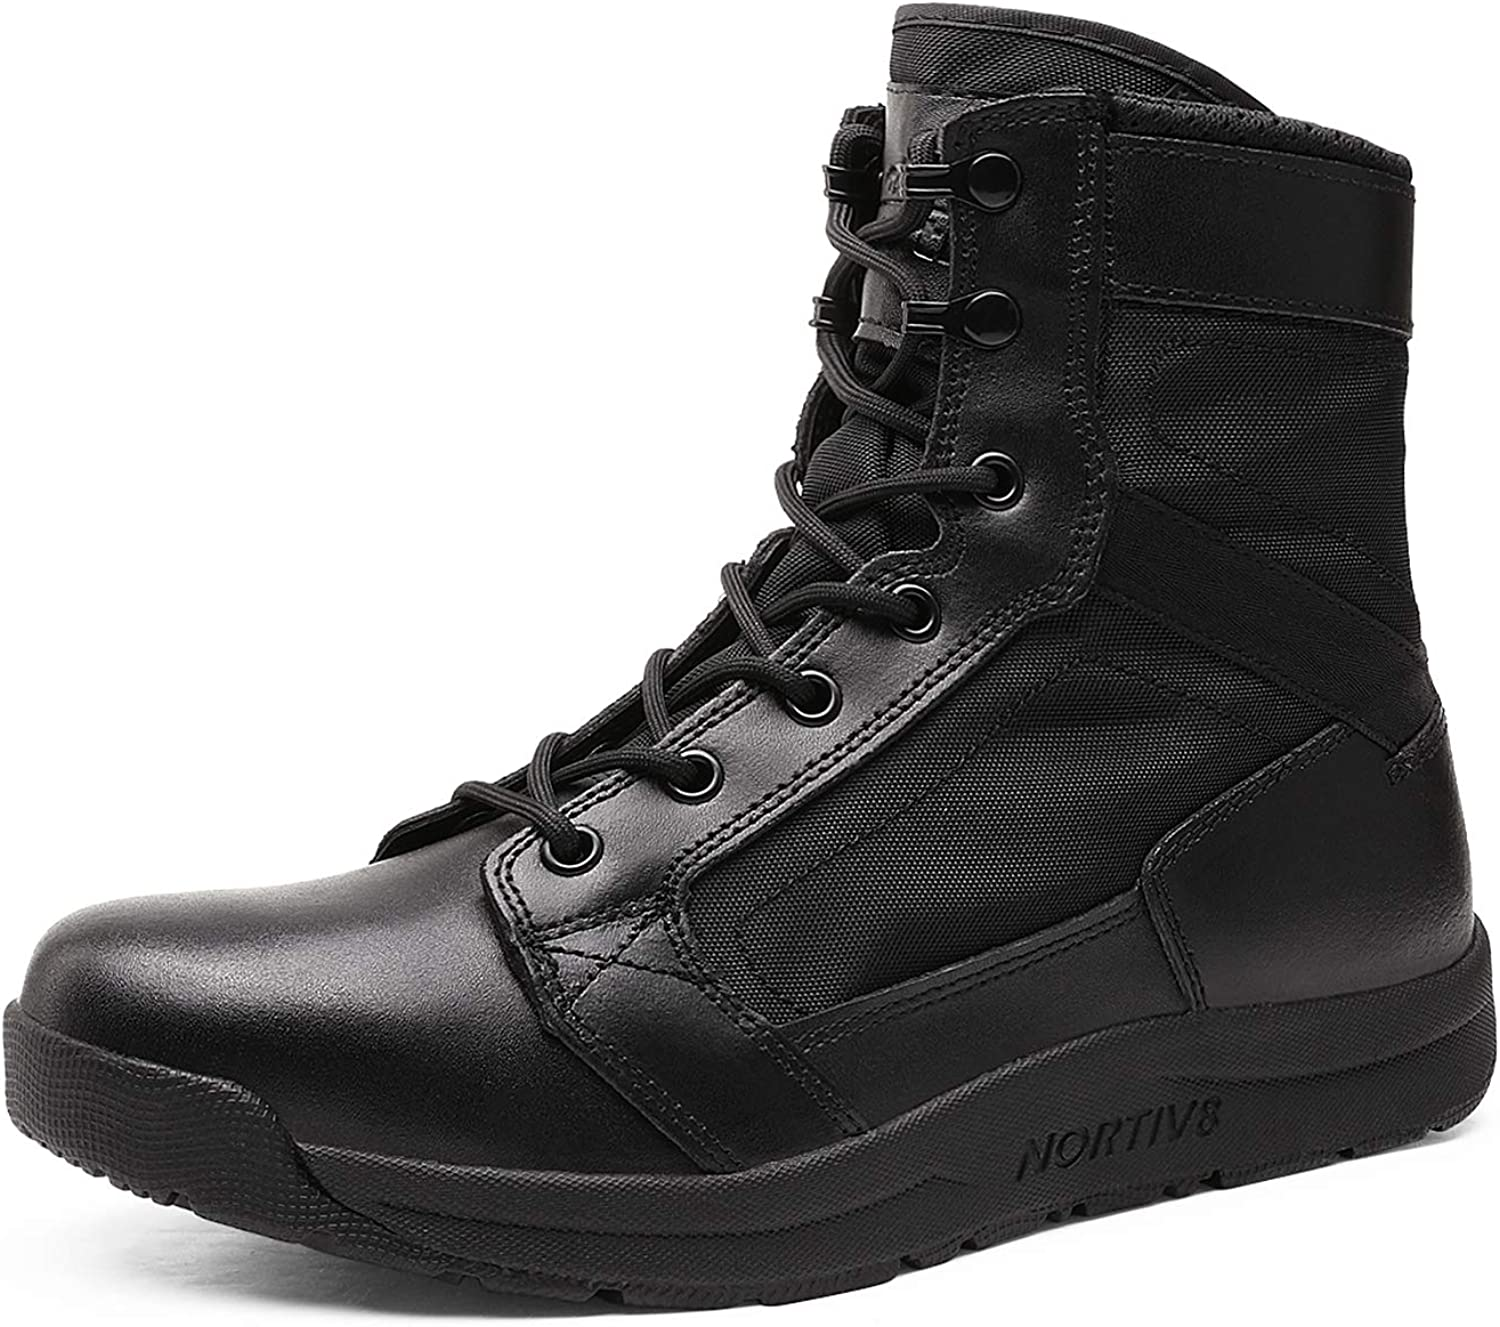 low-pricing NORTIV 8 Men's Military NEW before selling Lightweight Tactical Jungle Boots